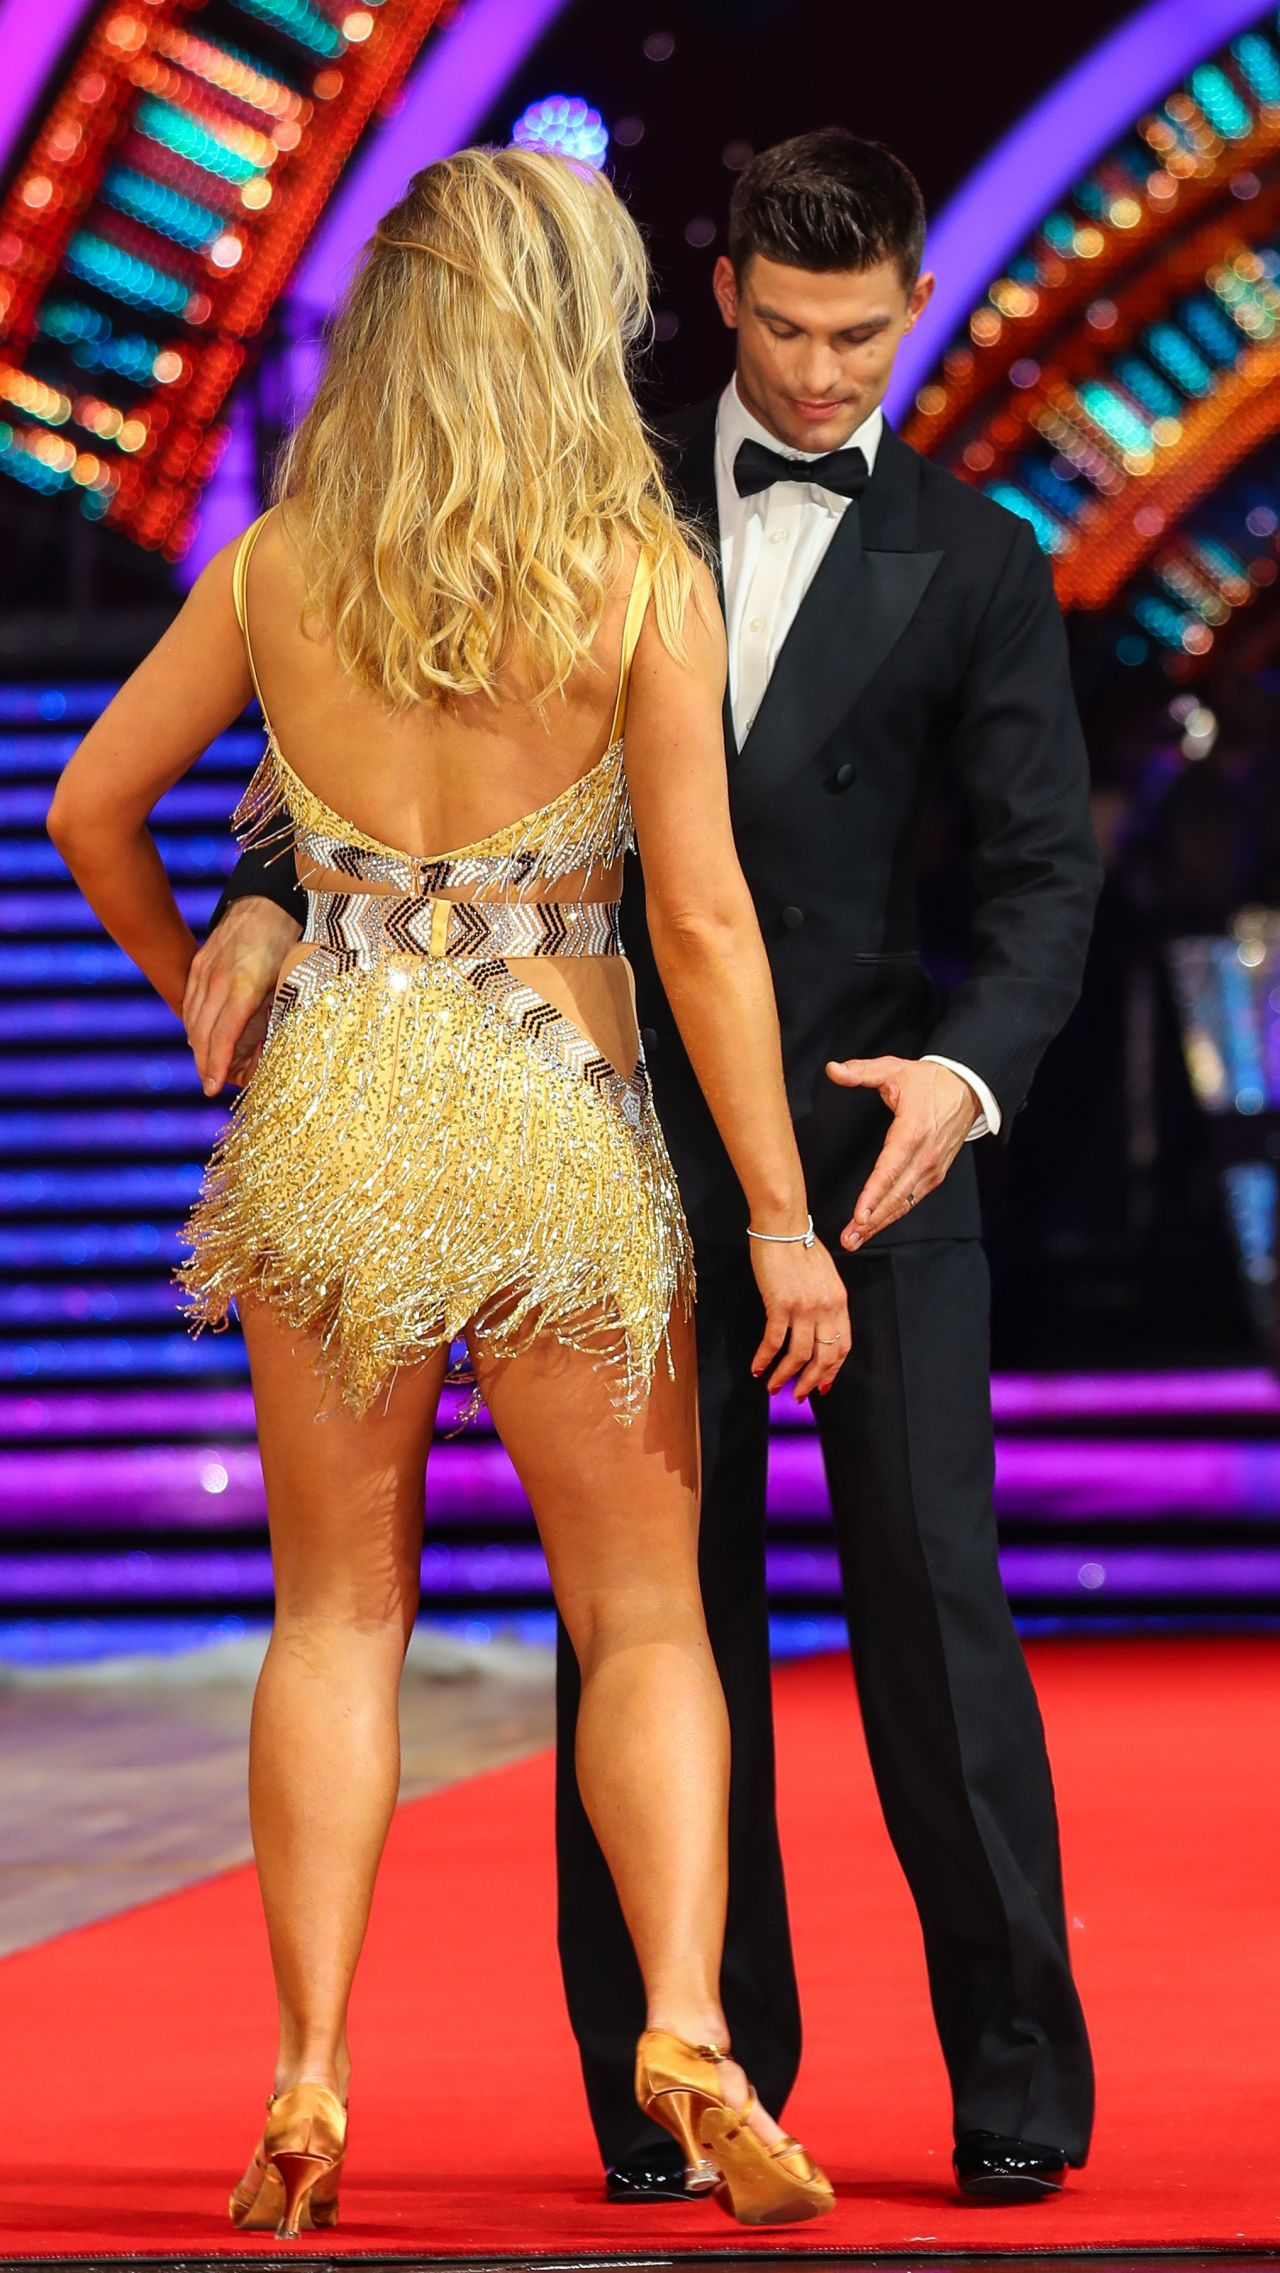 Gemma Atkinson Quot Strictly Come Dancing The Live Tour